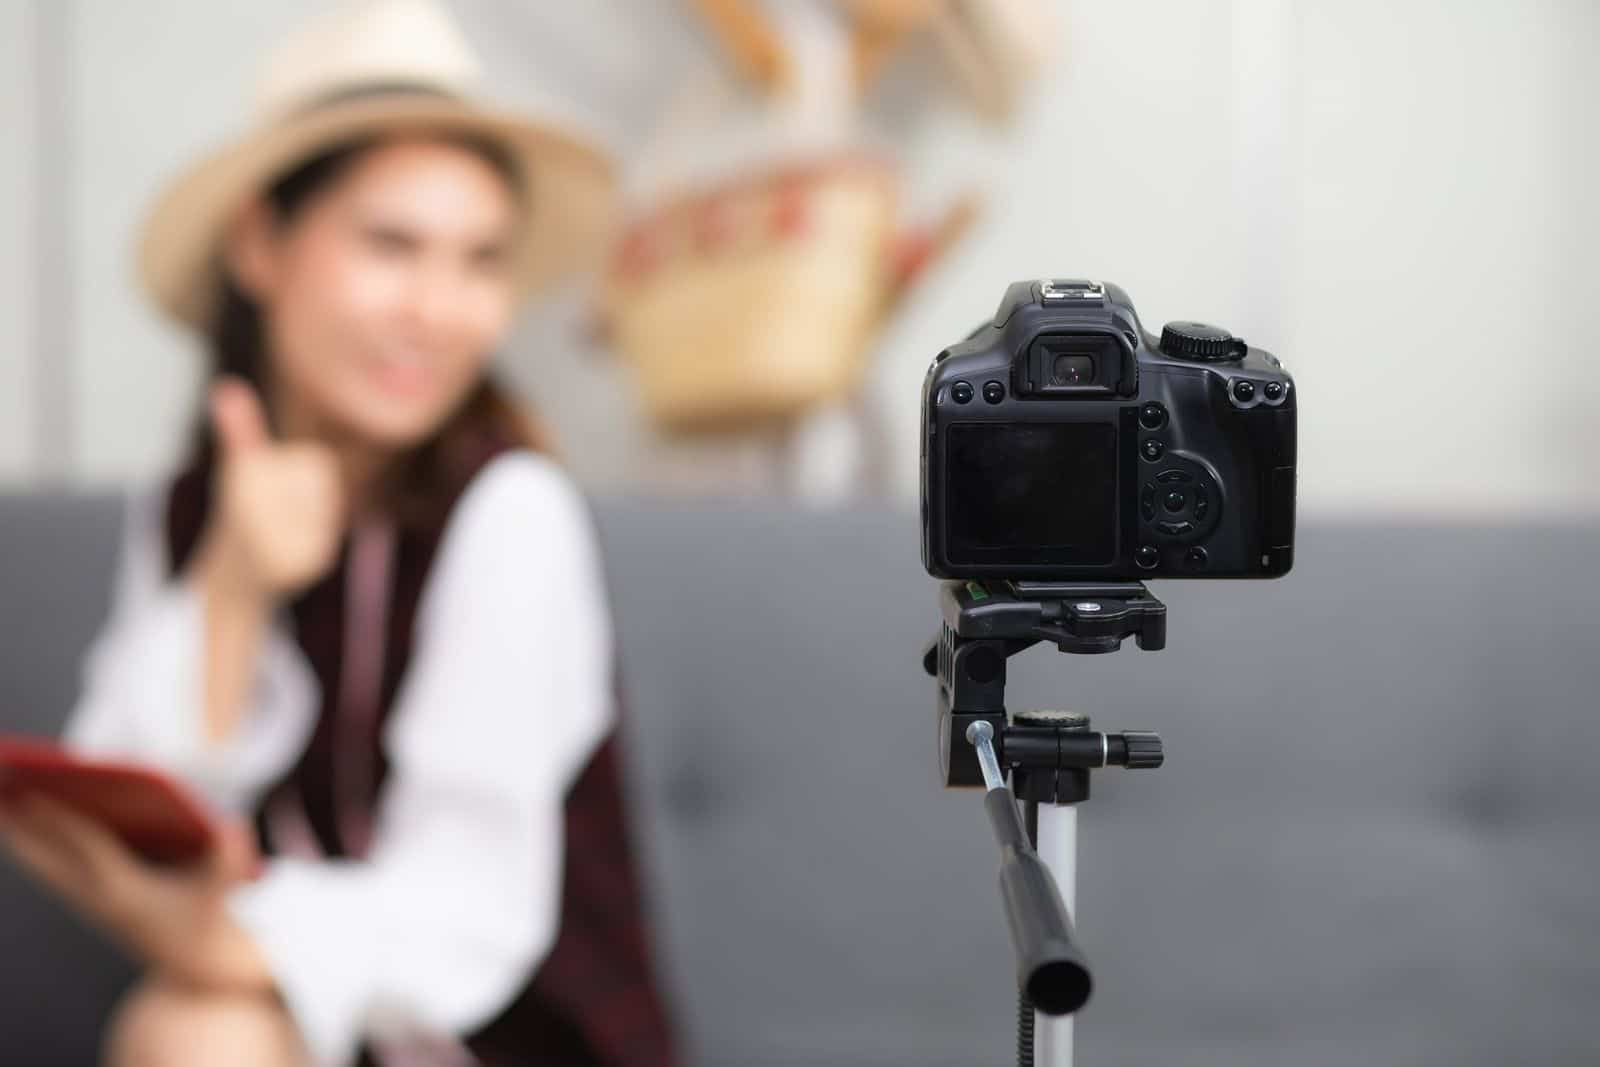 Tripod is the only tech prop you need for a DIY photoshoot